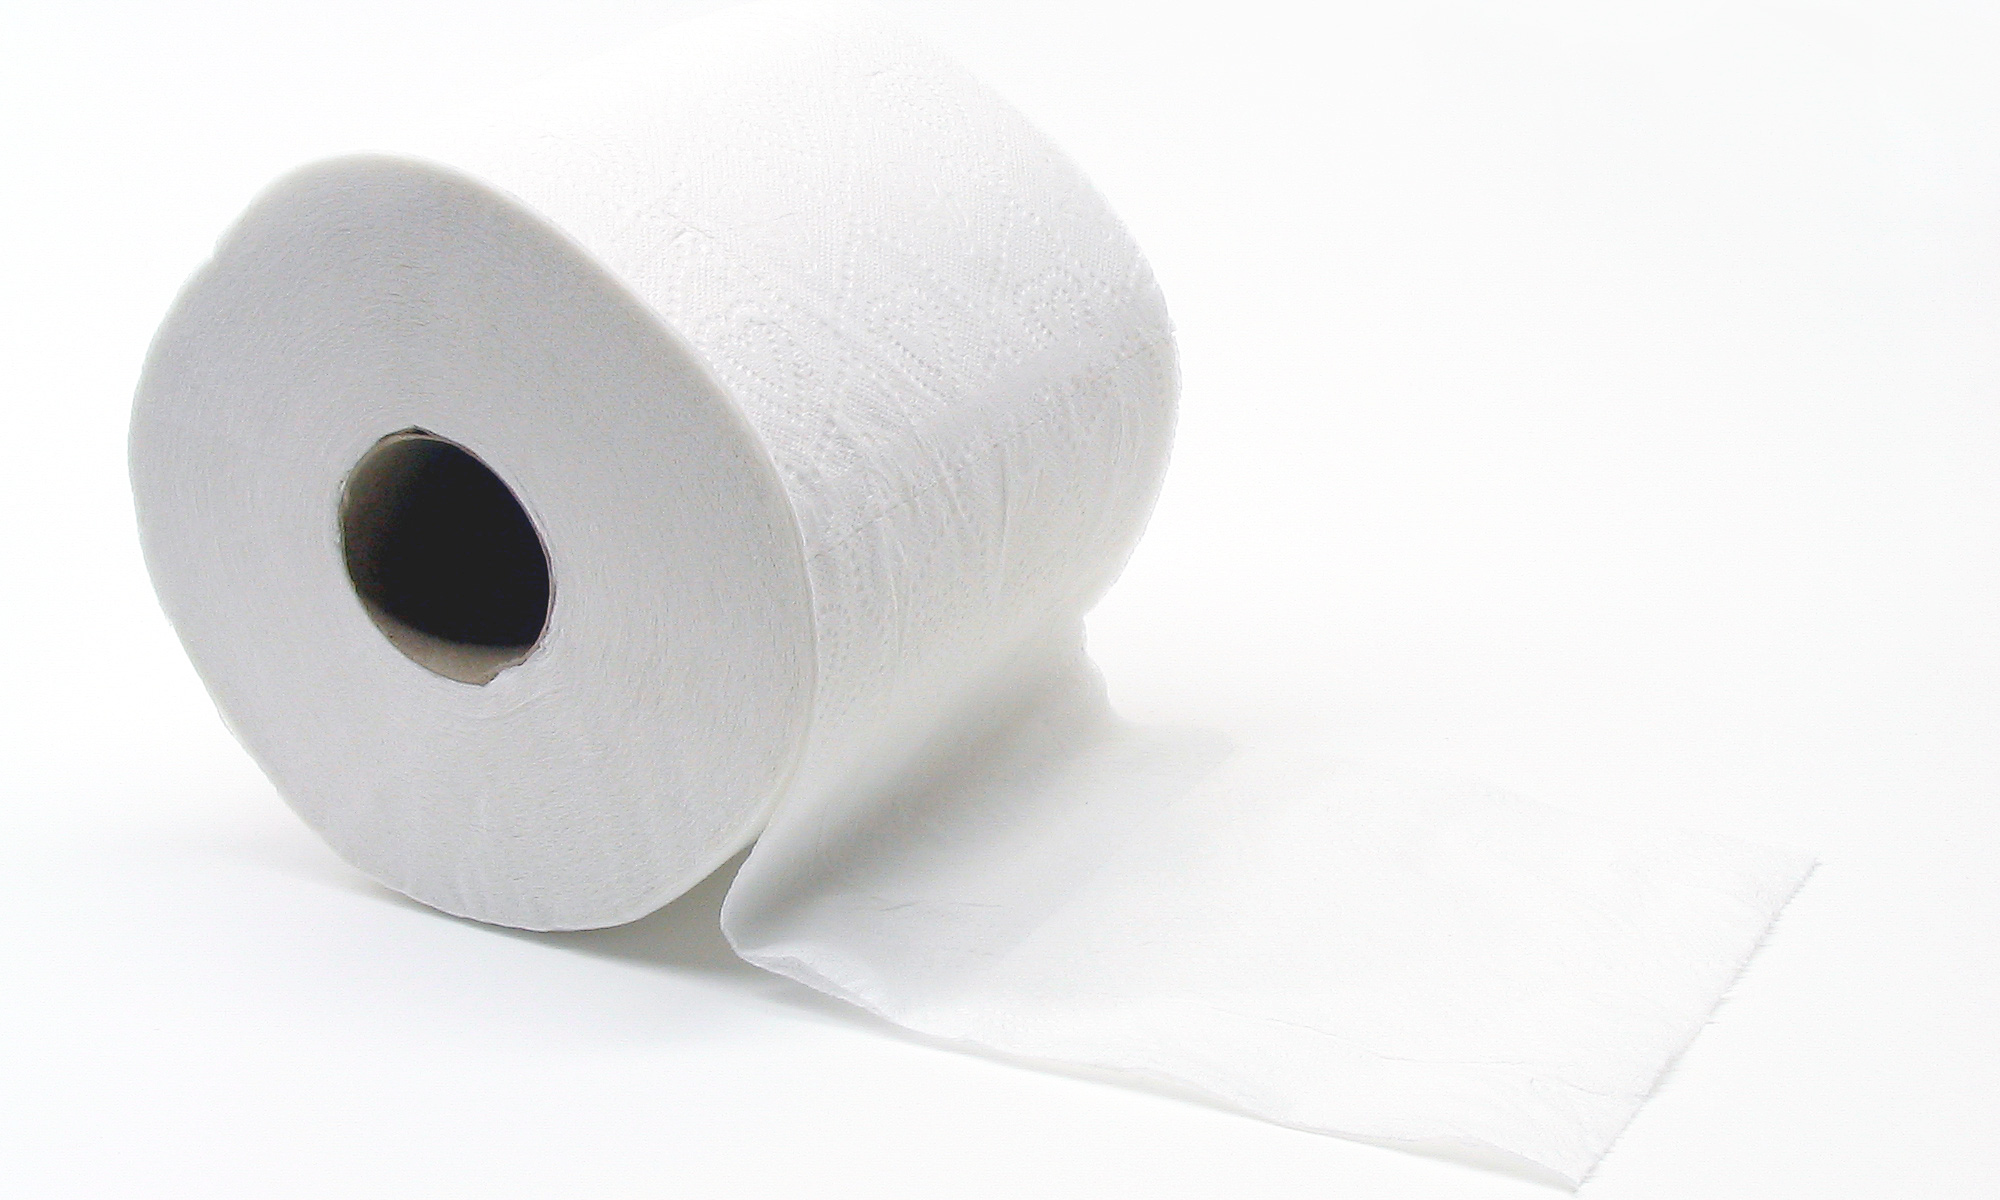 Just a roll of toilet paper on a white background, slightly unrolled.